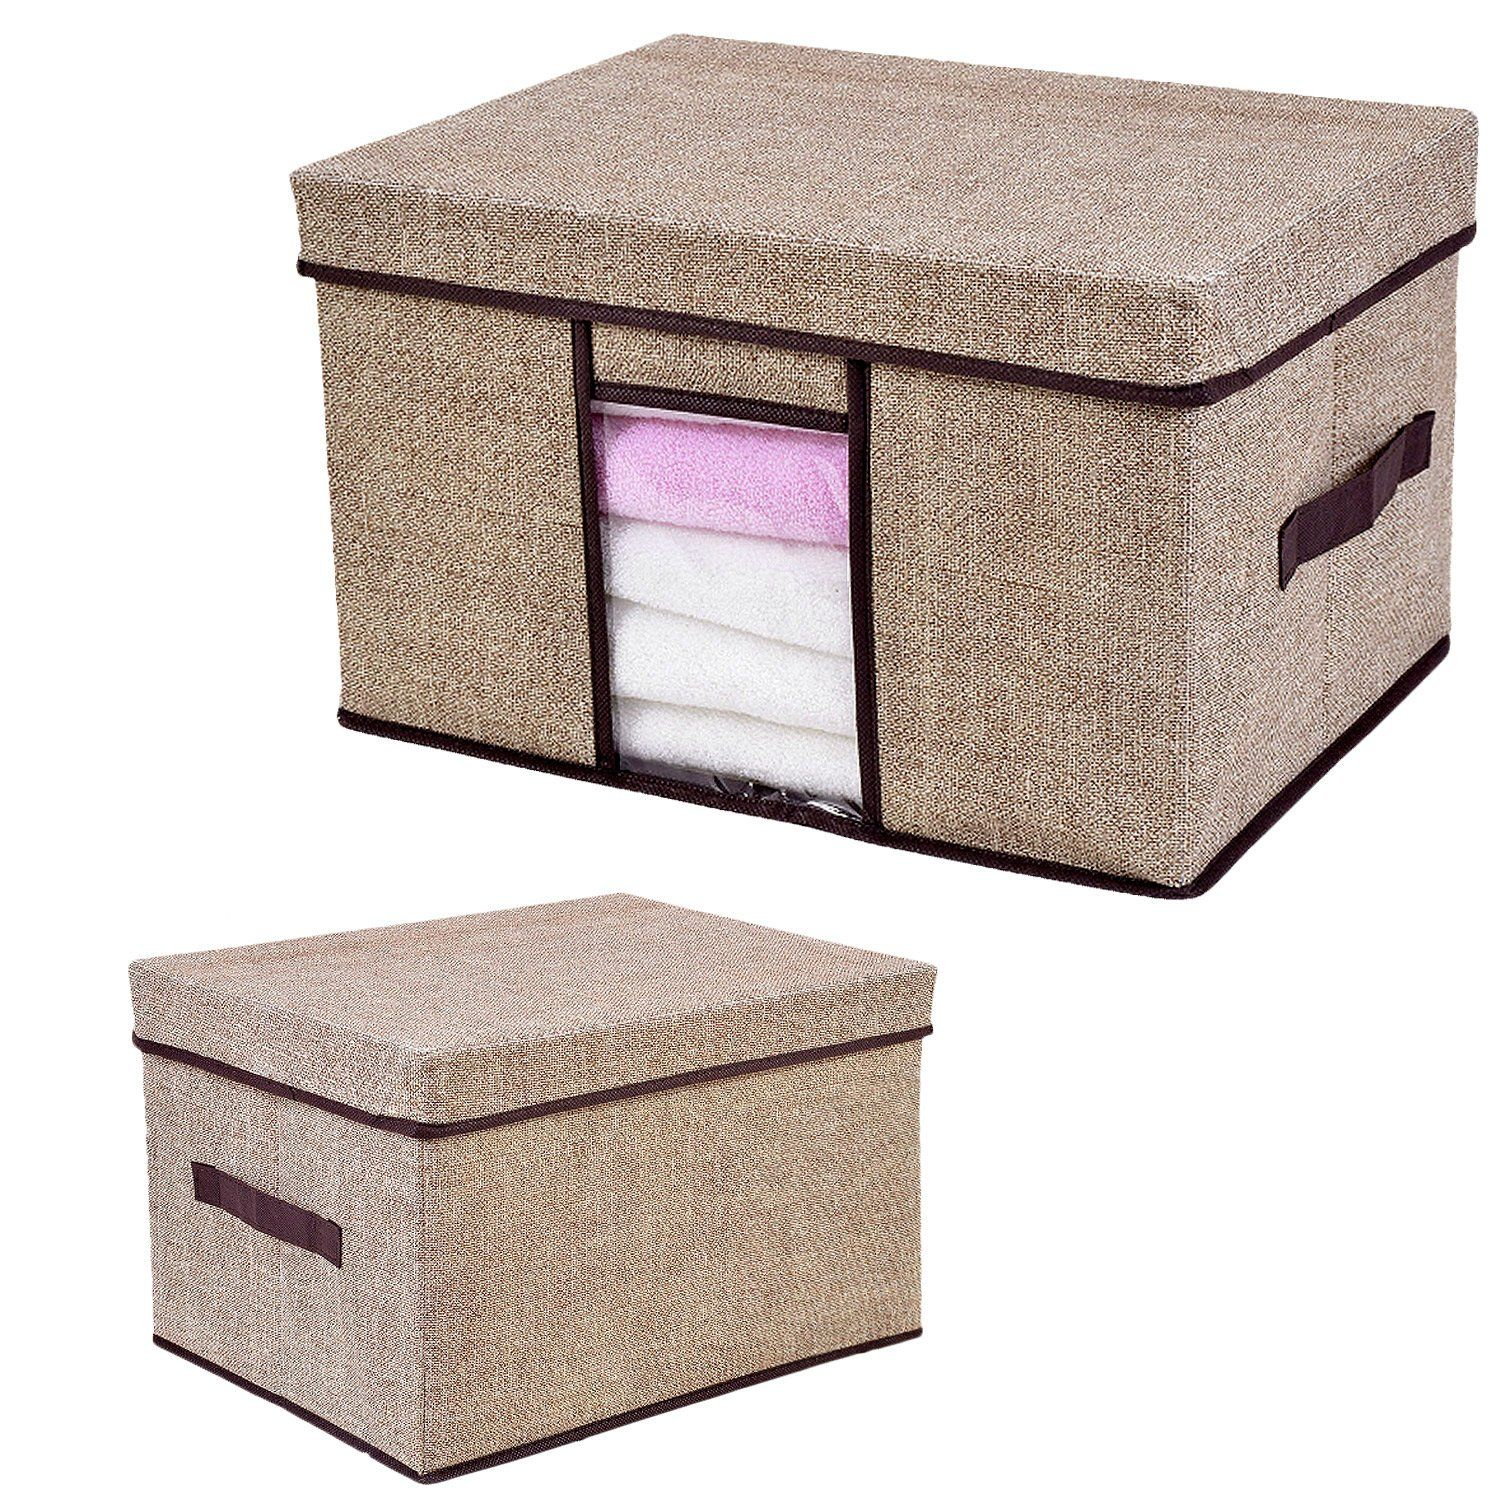 Amazon Com Cloth Organizer Box Pretid 10 X 12 X 16 Inch Foldable Houshold Storage Blanket Linen Cu Fabric Storage Boxes Clothes Organization Organiser Box